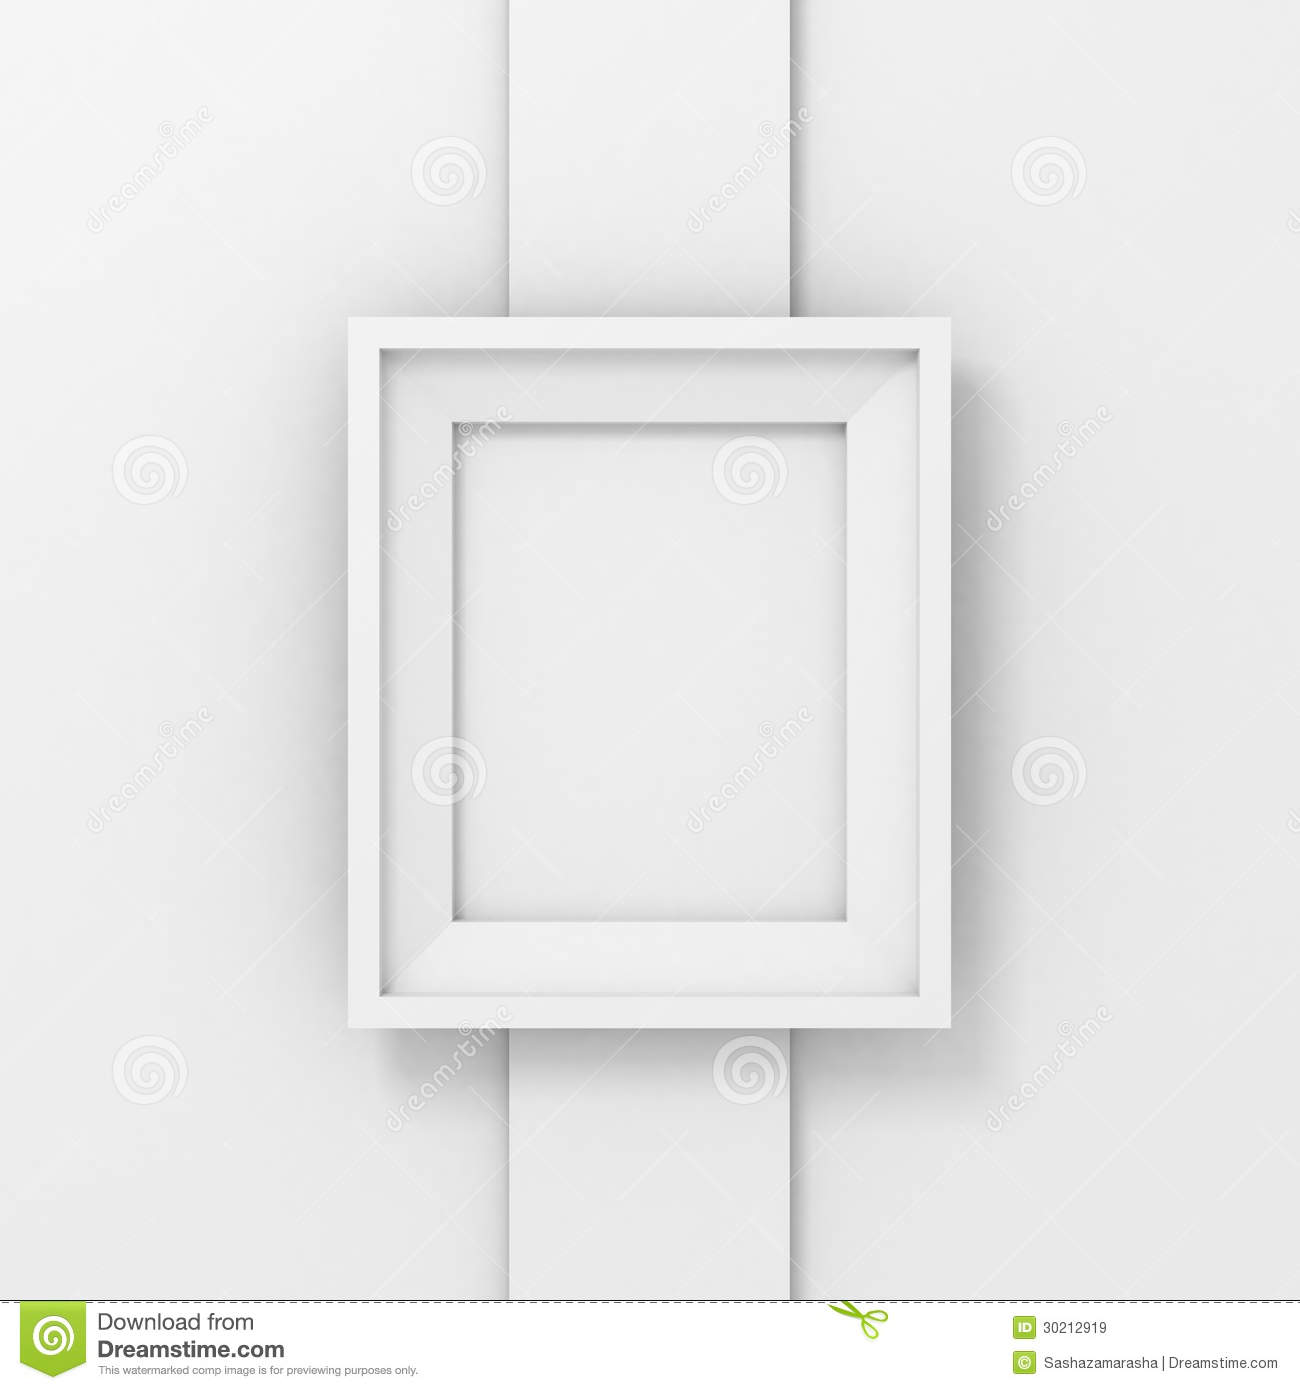 Blank Picture Or Photo Frame On A White Wall Column Stock ...